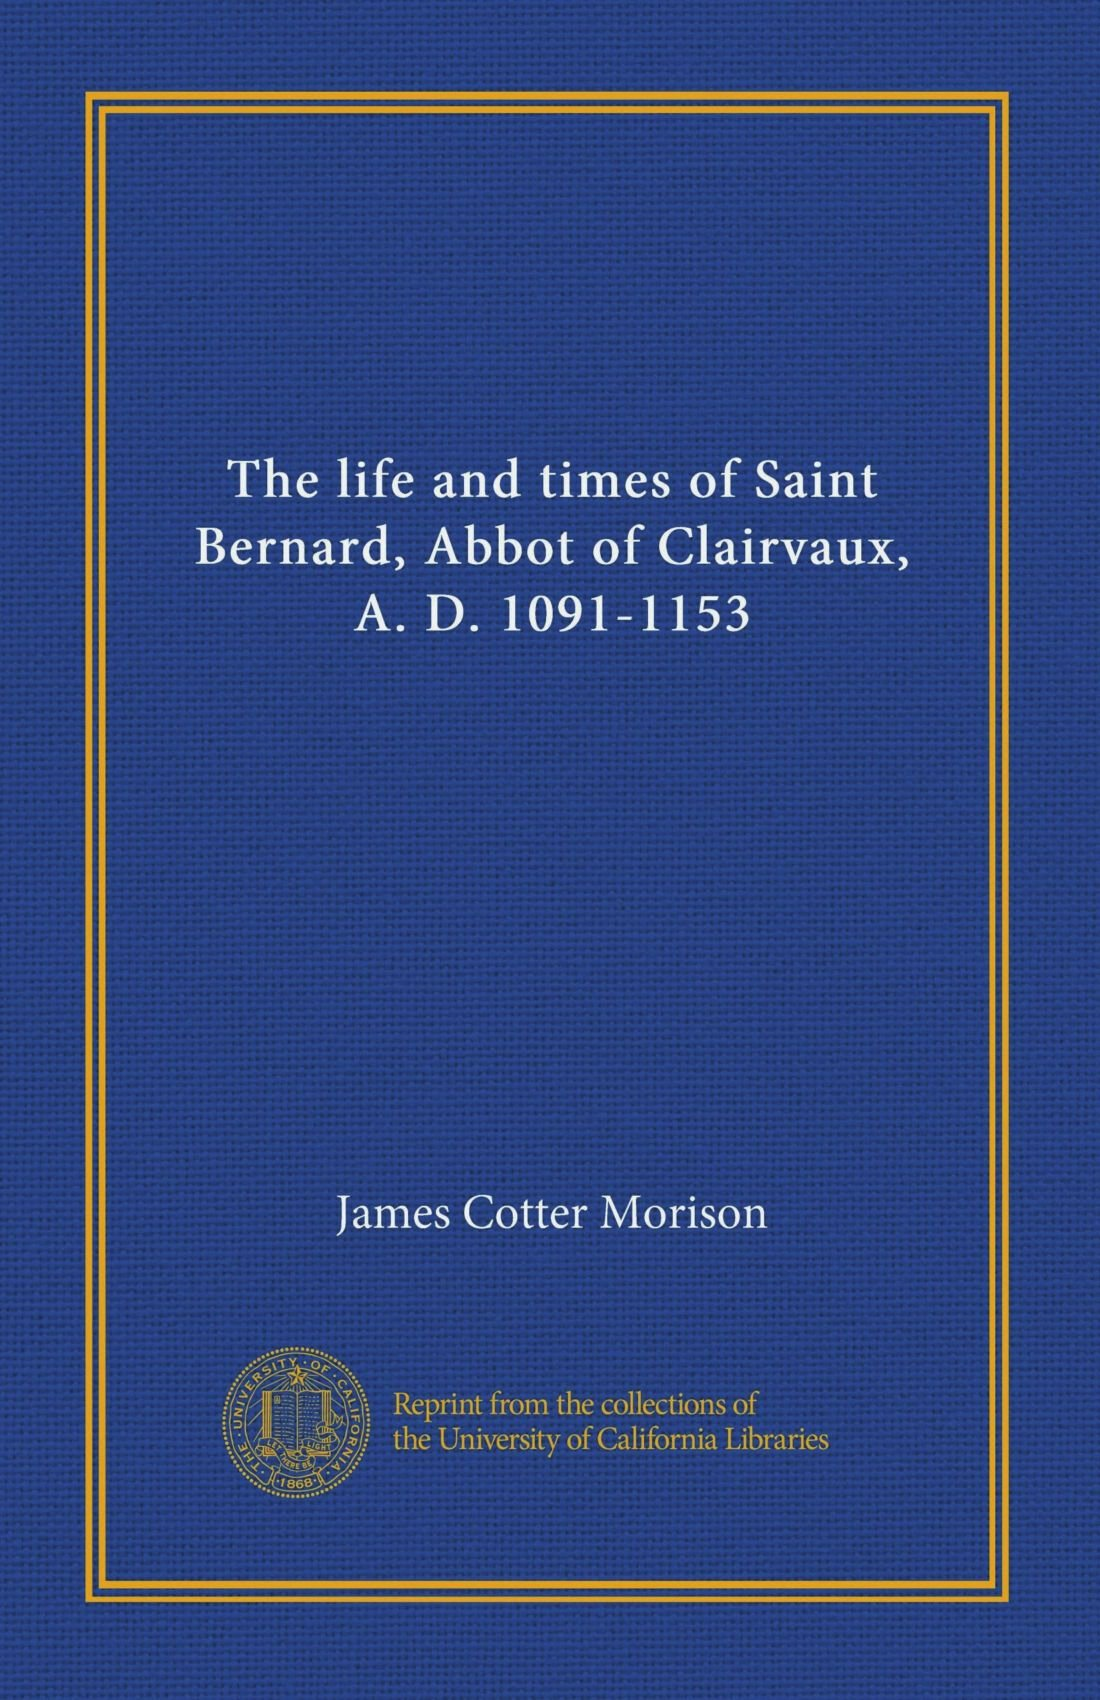 The life and times of Saint Bernard, Abbot of Clairvaux, A. D. 1091-1153 ebook